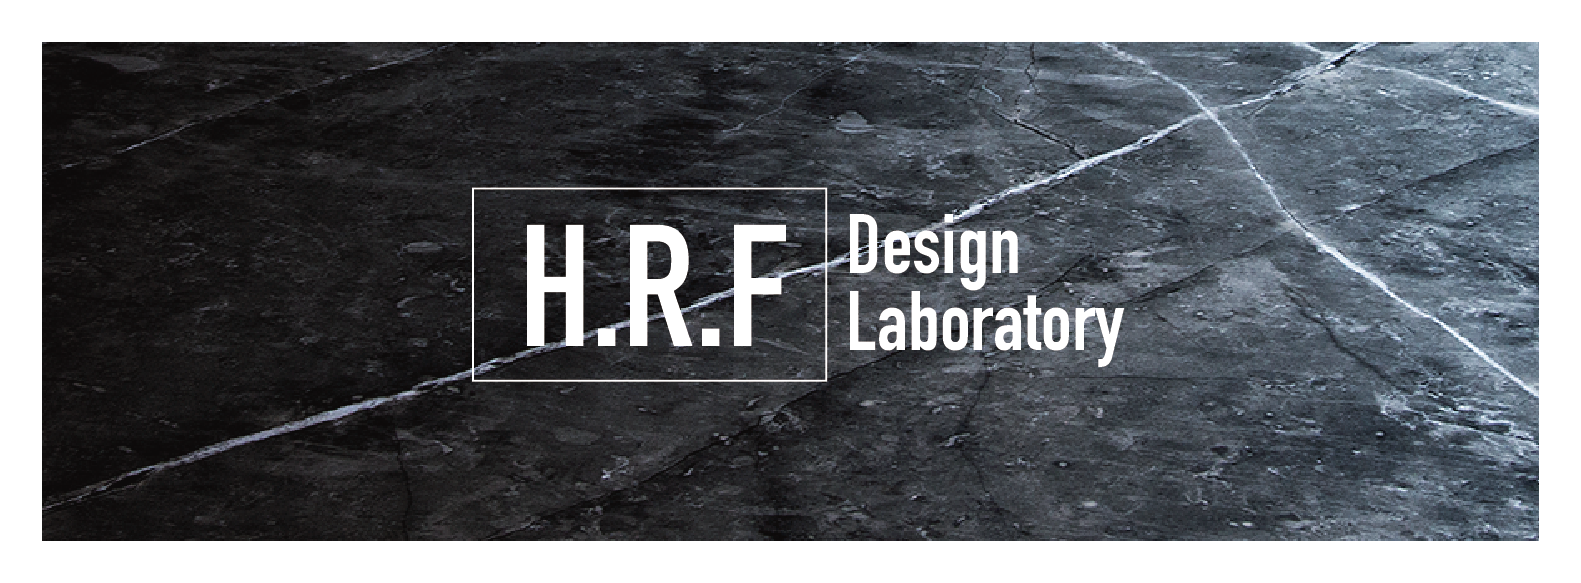 H.R.F Design Labotatory